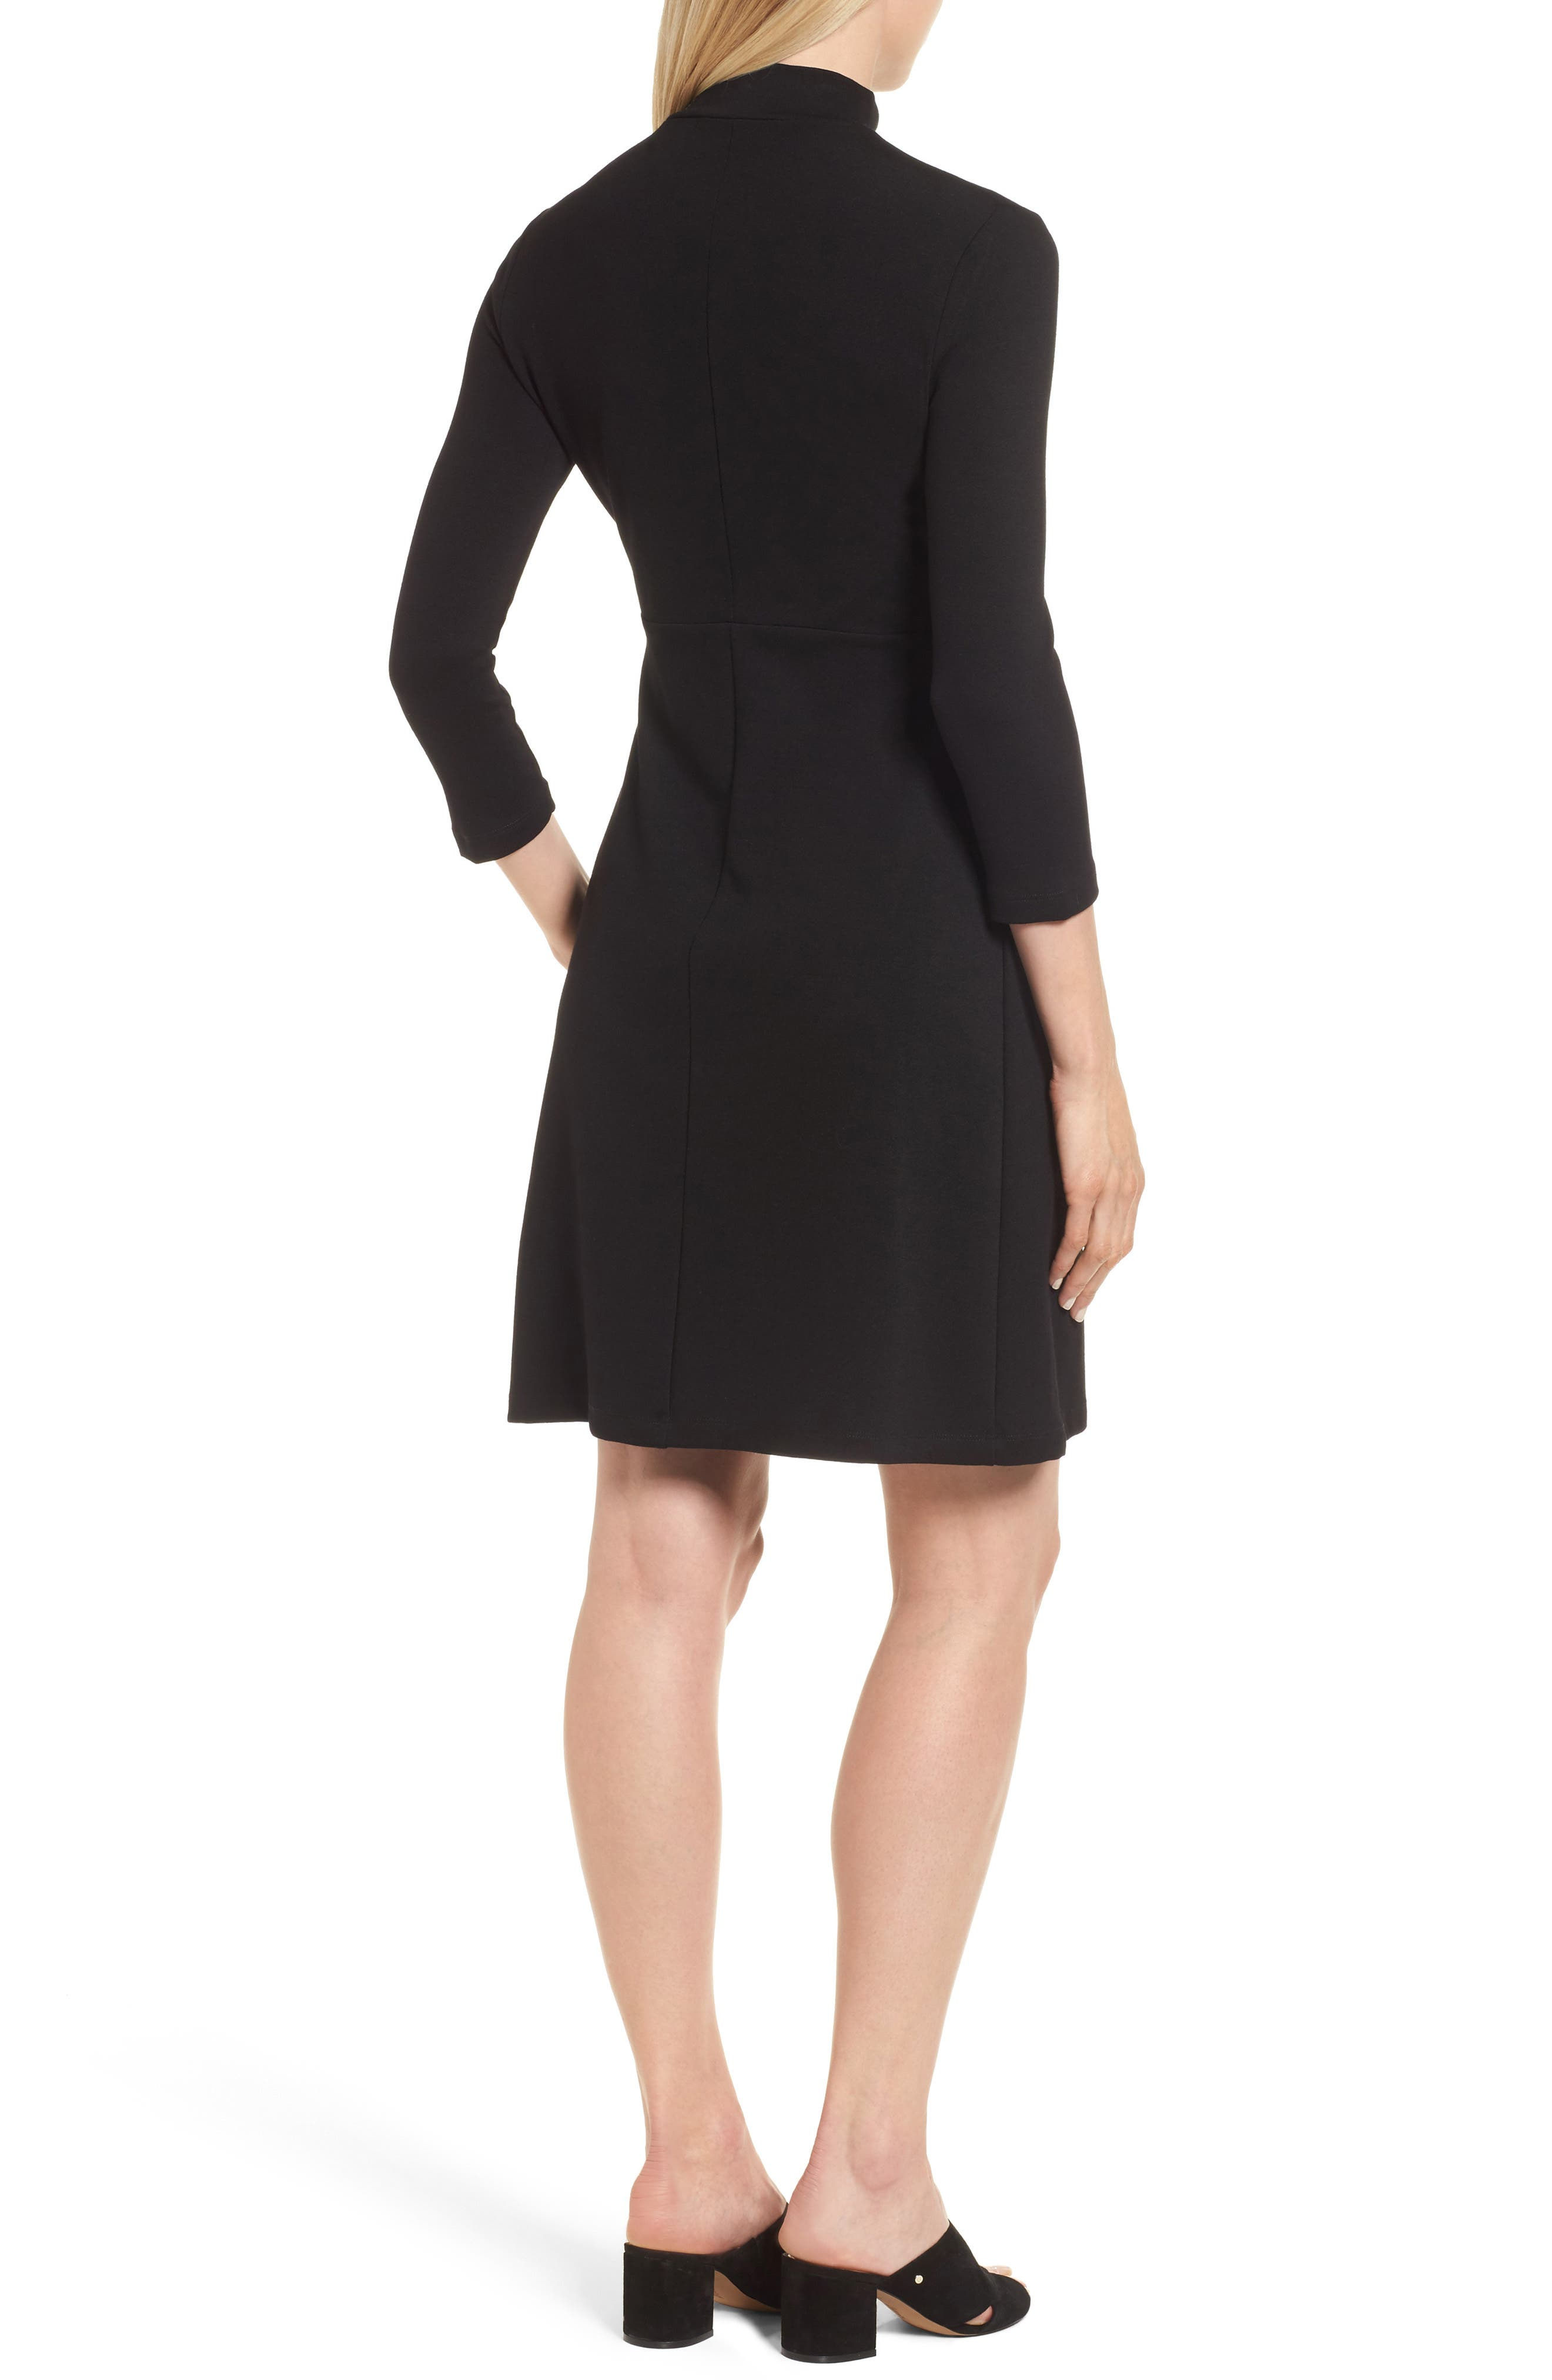 Kennett Maternity Dress,                             Alternate thumbnail 2, color,                             001